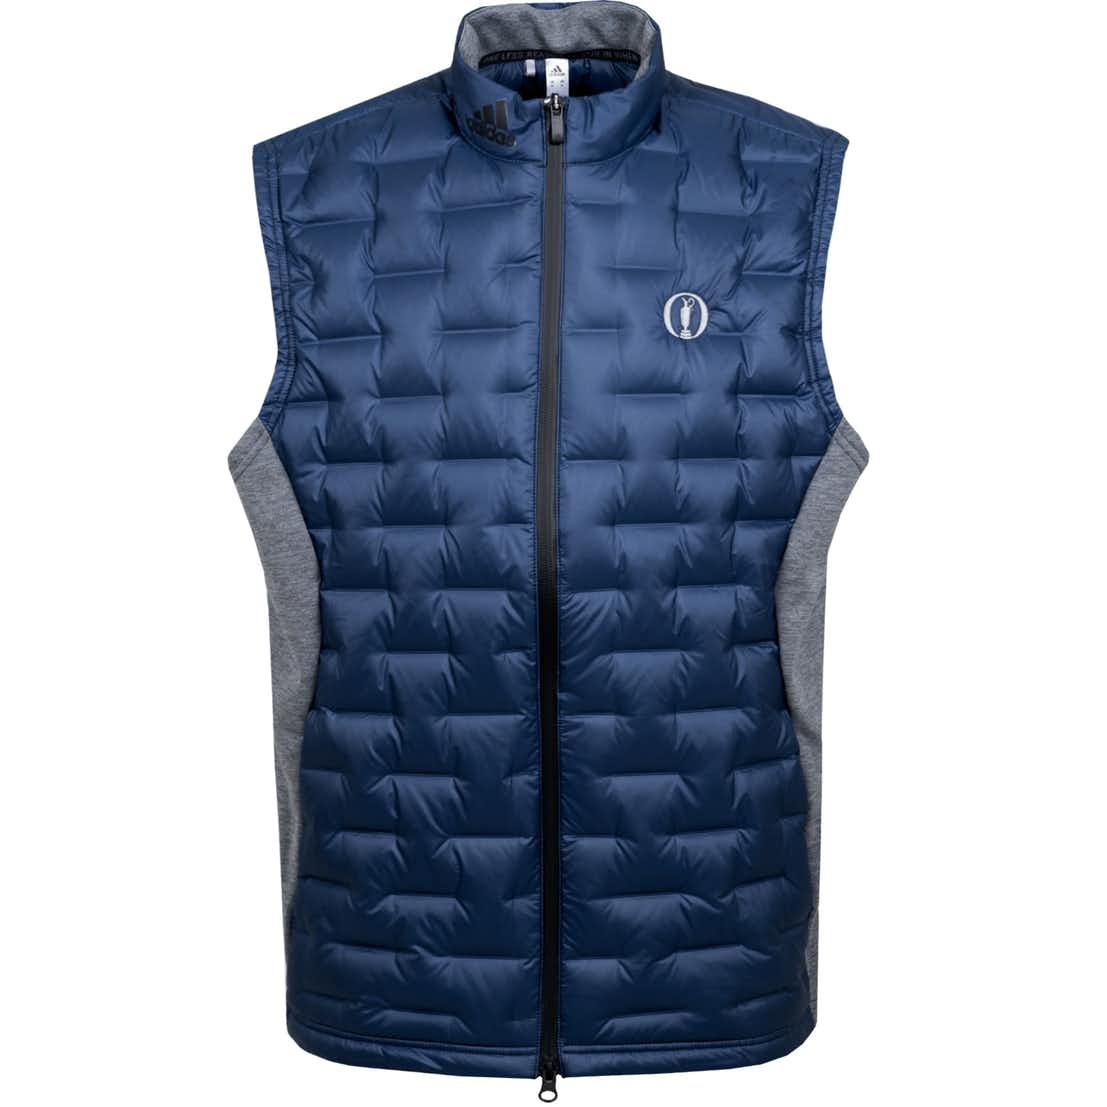 The Open adidas Frost Guard Vest - Navy